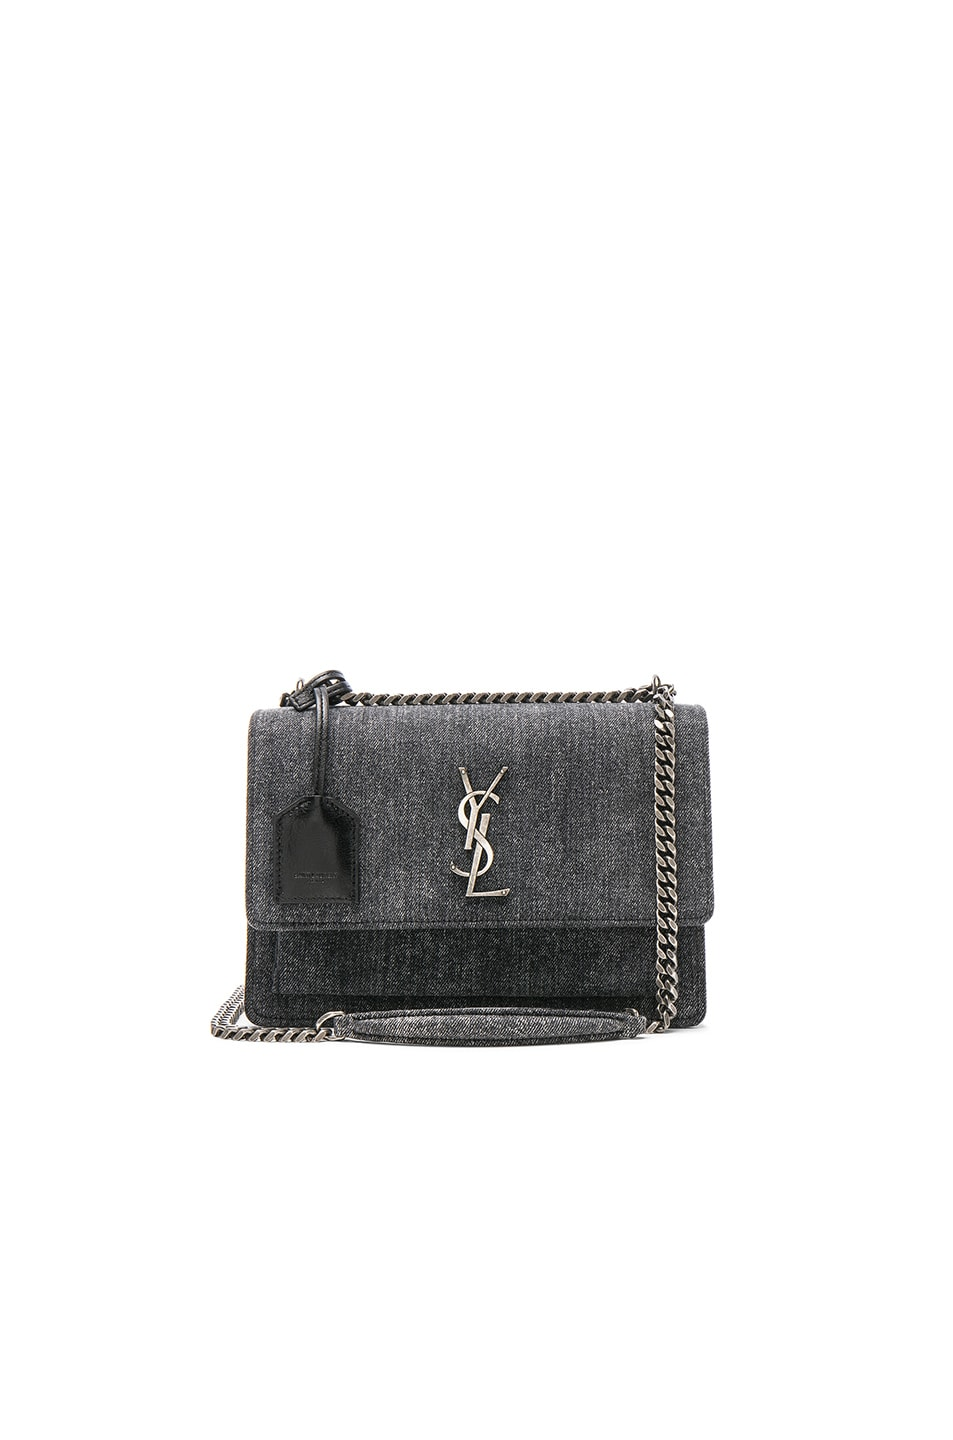 Image 1 of Saint Laurent Medium Monogramme Sunset Chain Bag in Denim